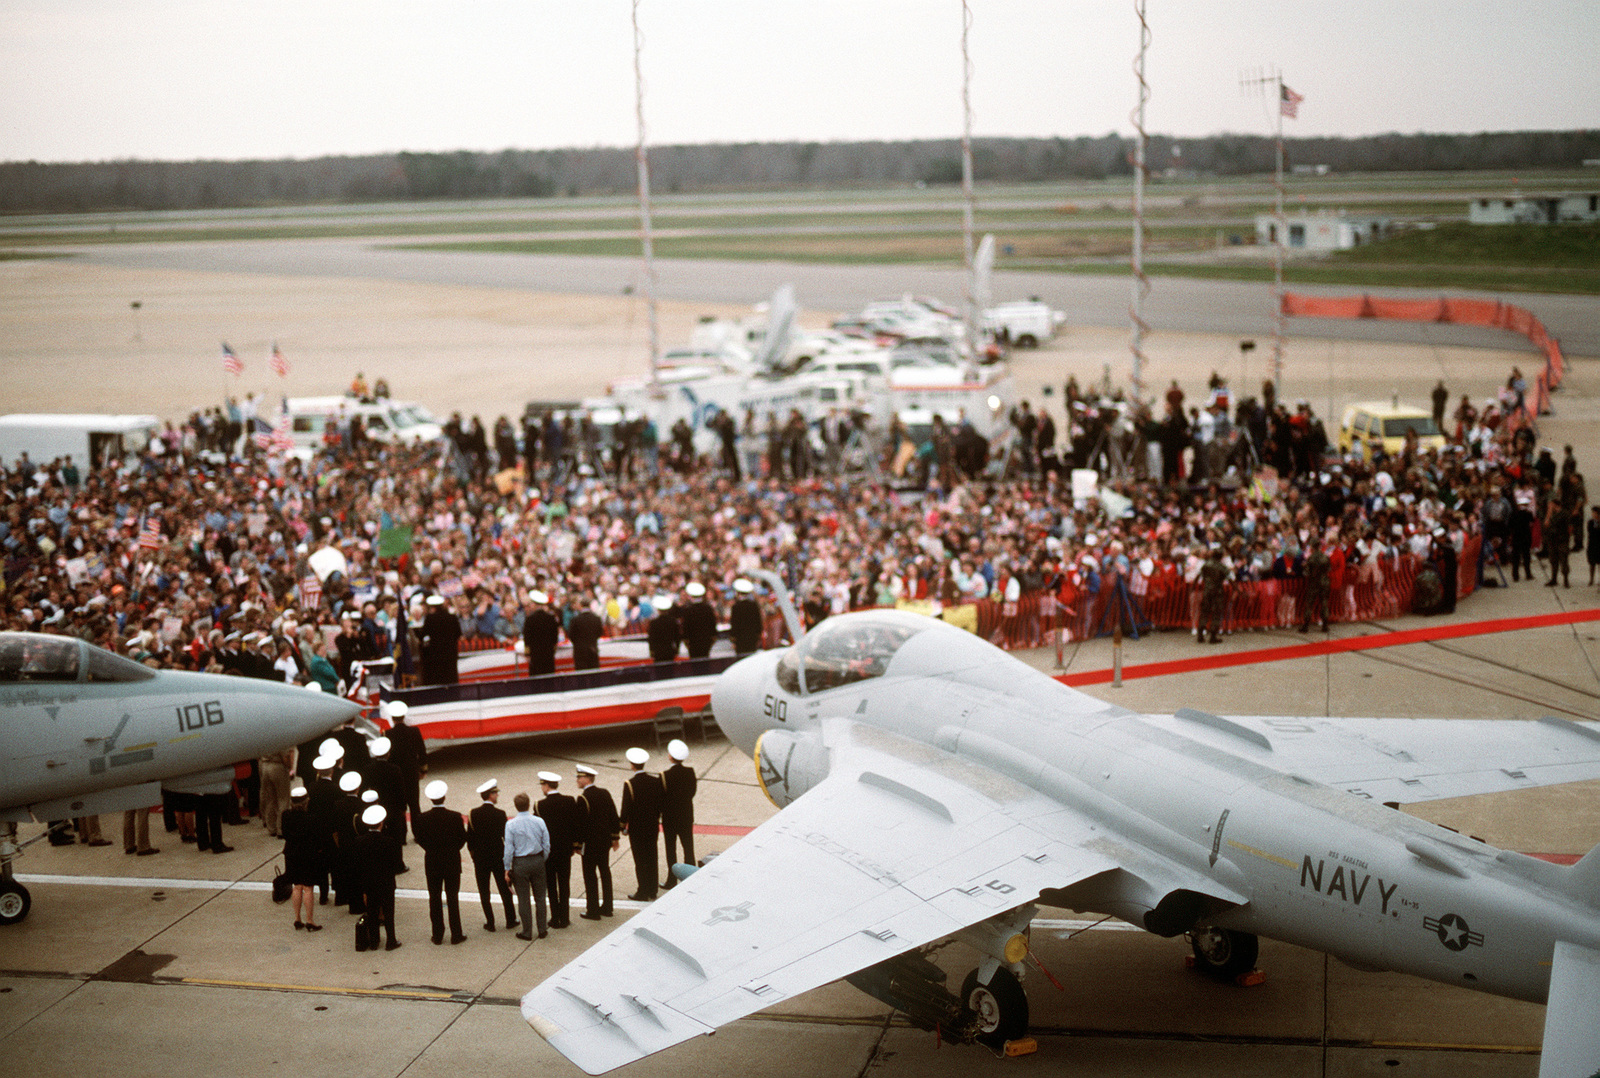 A Fighter Squadron 101 (VF-101) F-14A Tomcat aircraft, an A-6 Intruder aircraft and a Fleet Logistics Support Squadron 56 (VR-56) C-9 Nightingale aircraft provide the backdrop as a crowd of well-wishers welcomes LT. Robert Wetzel, LT. Lawrence Slade, and LT. Jeffrey Zaun during a ceremony in their honor. The three Navy pilots' aircraft were shot down over Iraq during Operation Desert Storm and the men held as prisoners of war until their release on March 4th